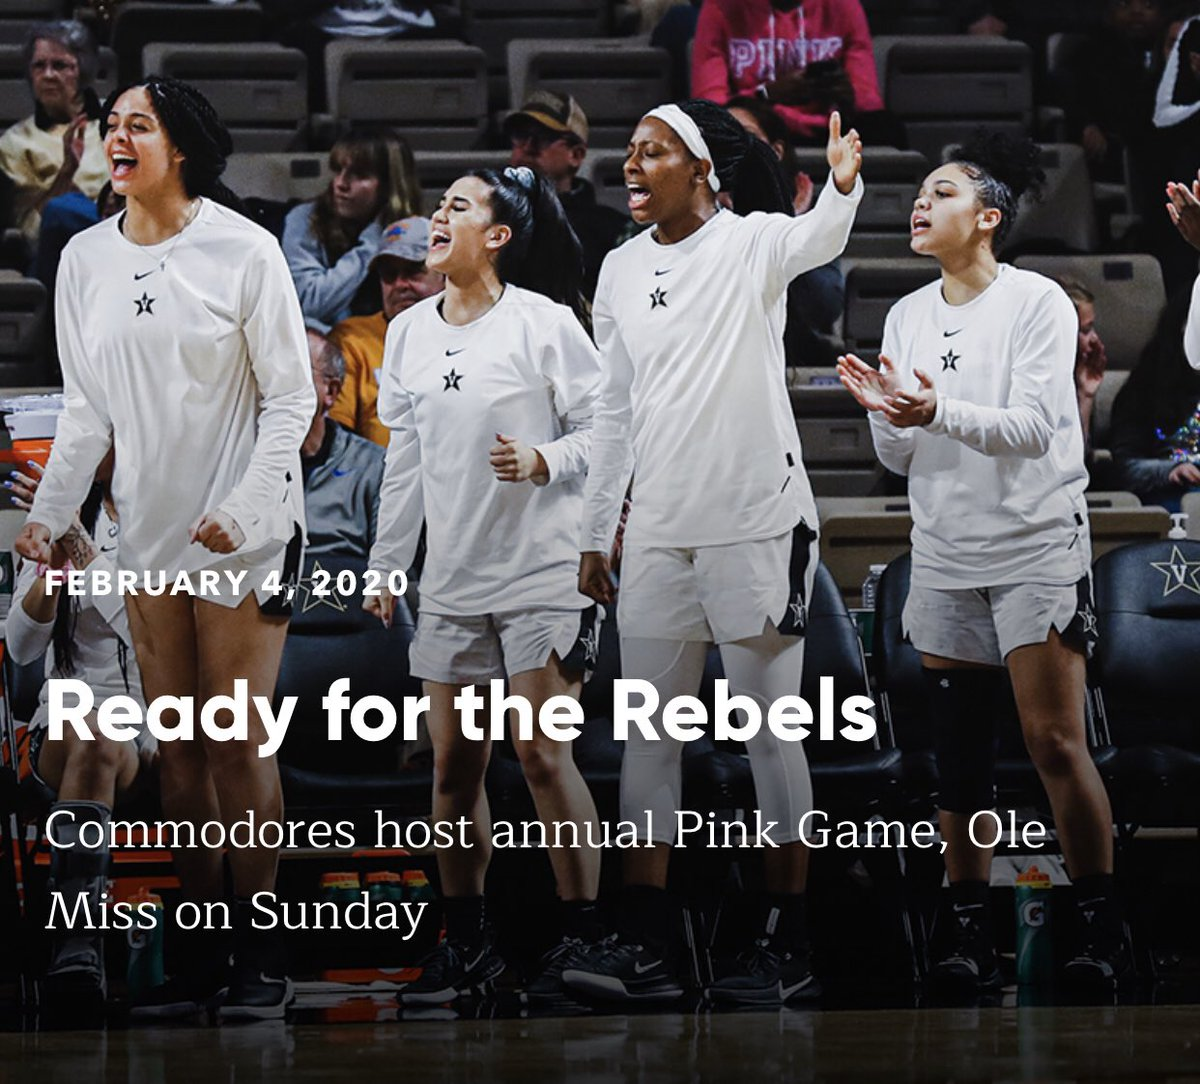 Come help us cheer on the @VandyWBB team tomorrow at 4 tomorrow as they take on Ole Miss looking to get closer to earning a @WomensNIT berth!! https://oss.ticketmaster.com/aps/vanderbilt/EN/buy/details/W1520…pic.twitter.com/7xyiqxTWna